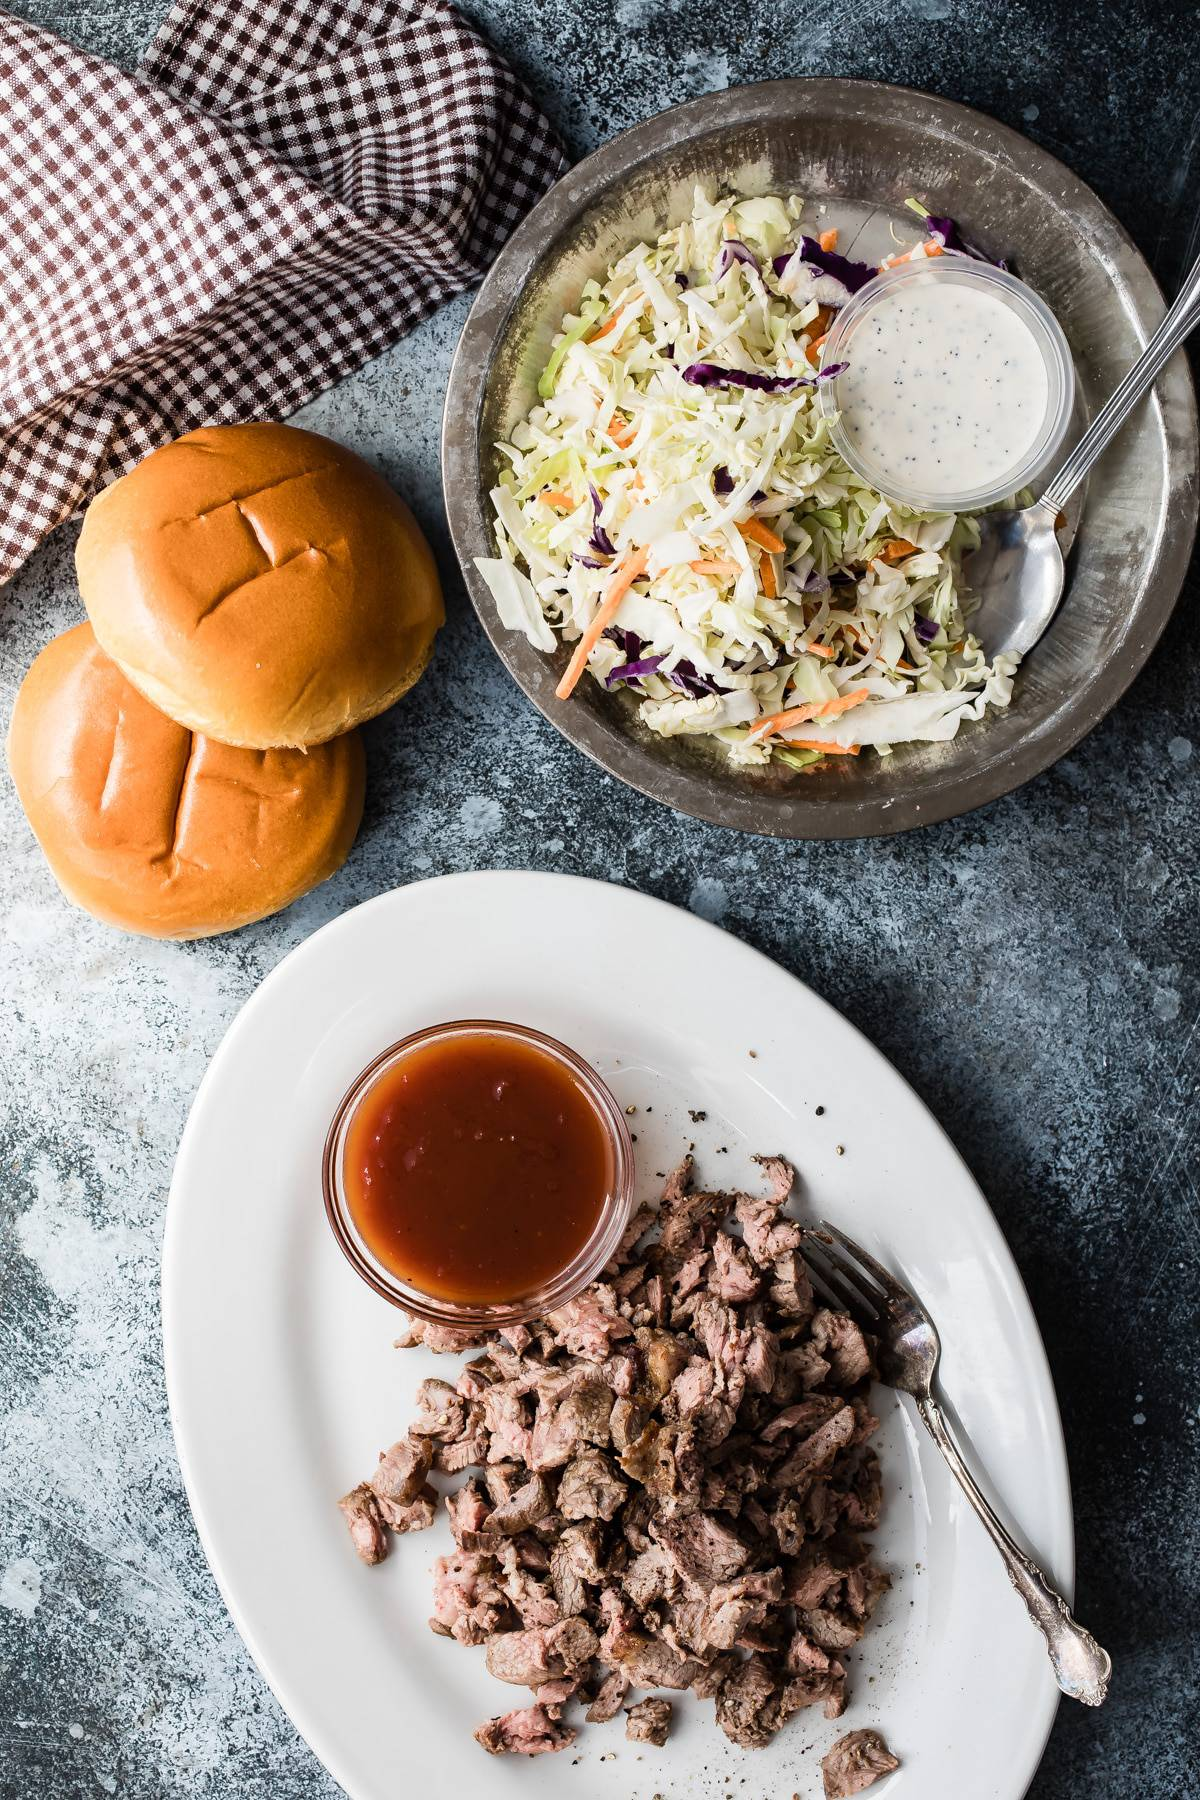 grilled lamb with coleslaw and bbq sauce